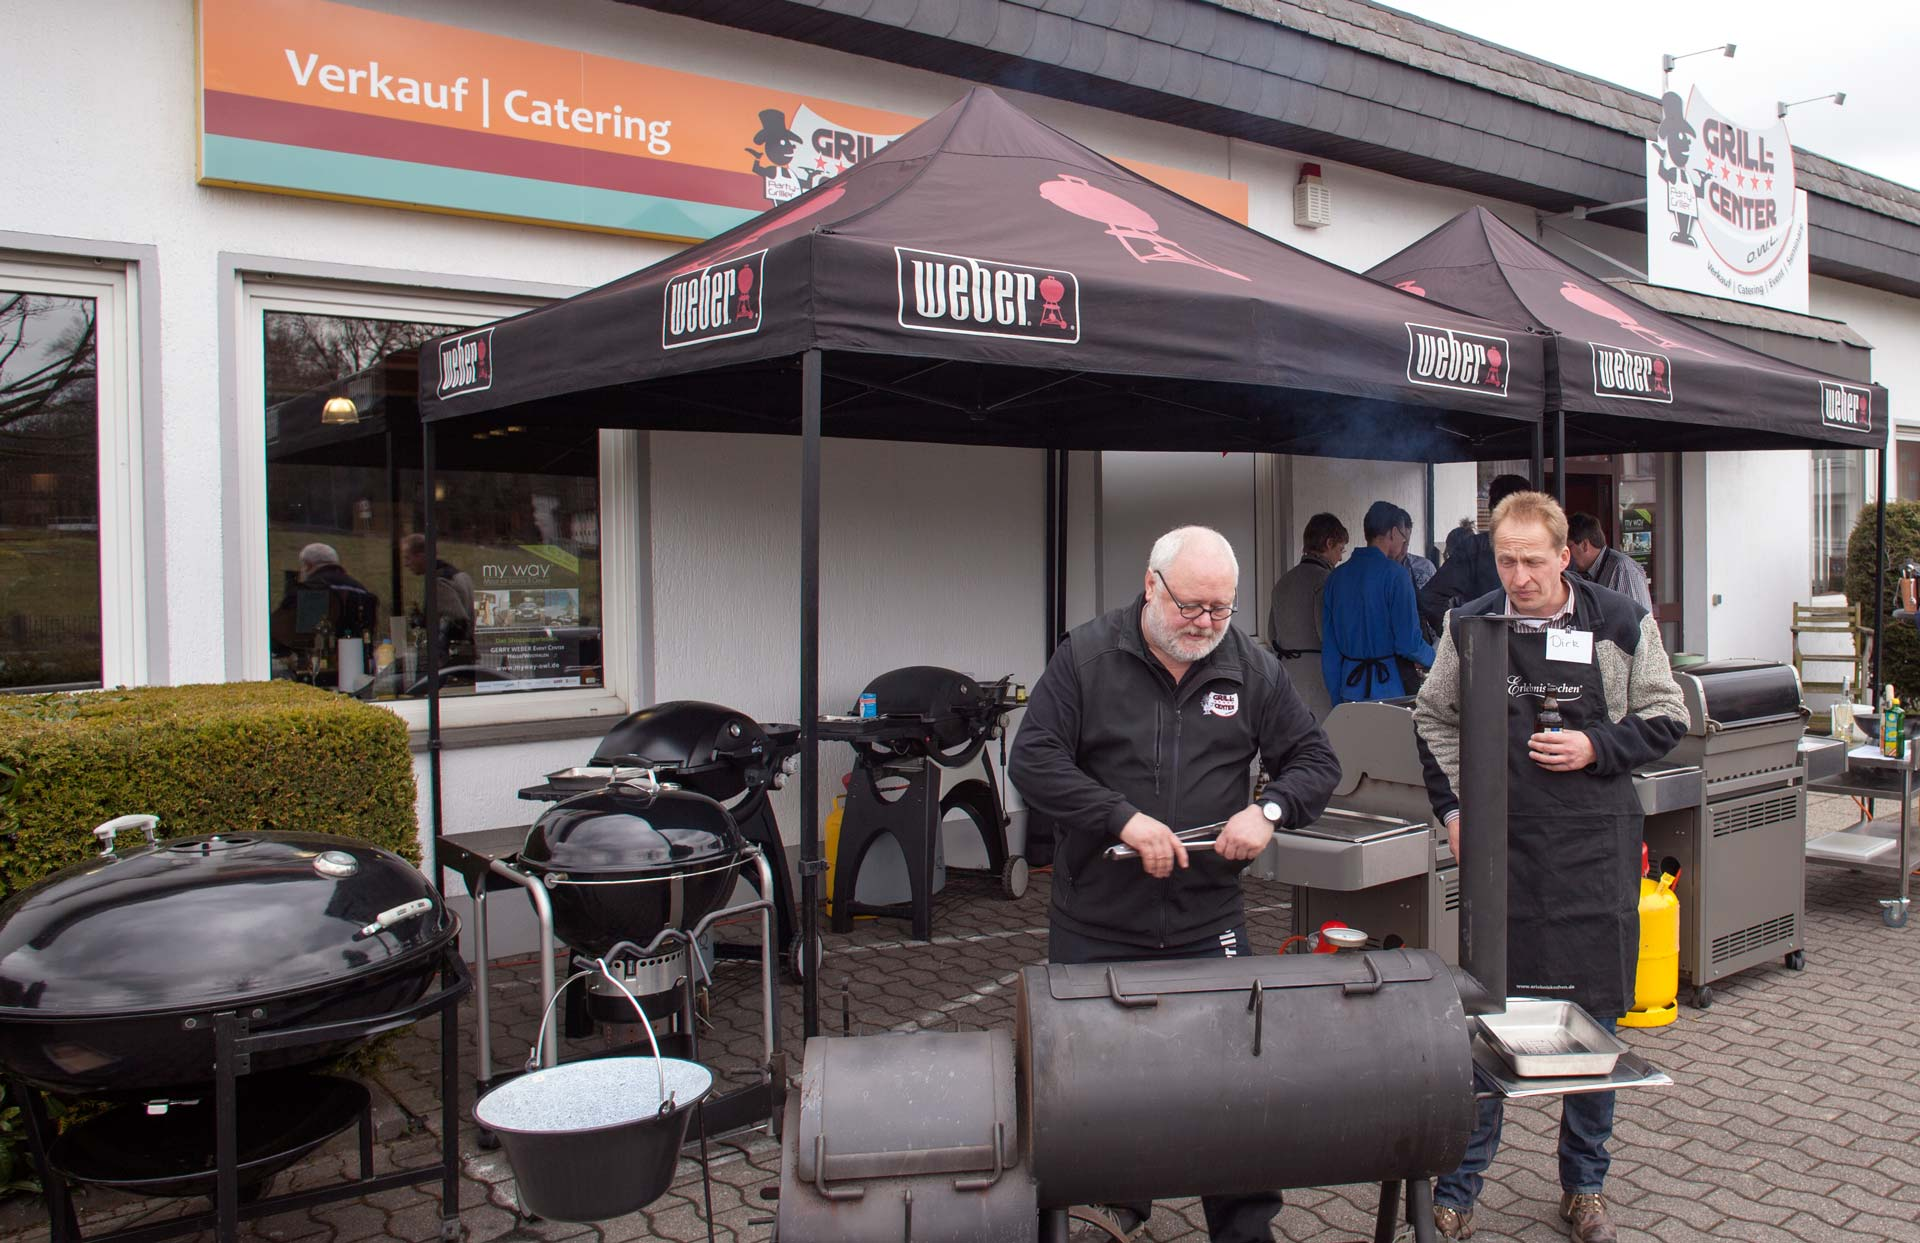 grill shop bielefeld kleinster mobiler gasgrill. Black Bedroom Furniture Sets. Home Design Ideas